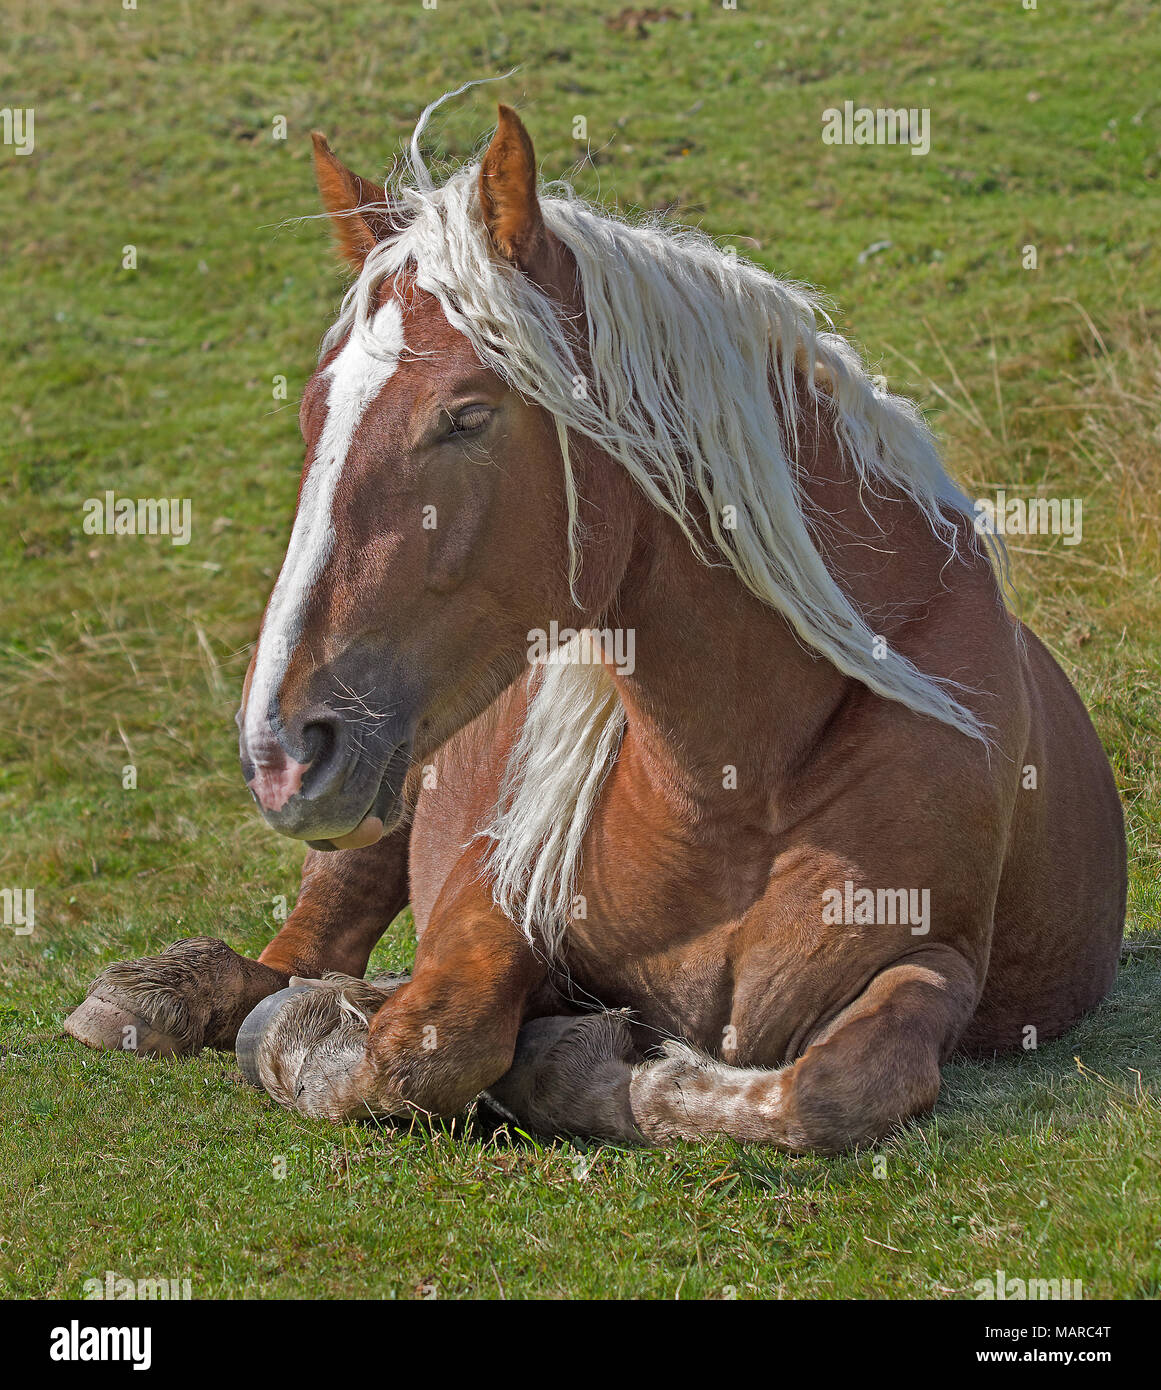 Draft horse. Chestnut adult lying on a pasture. Italy - Stock Image